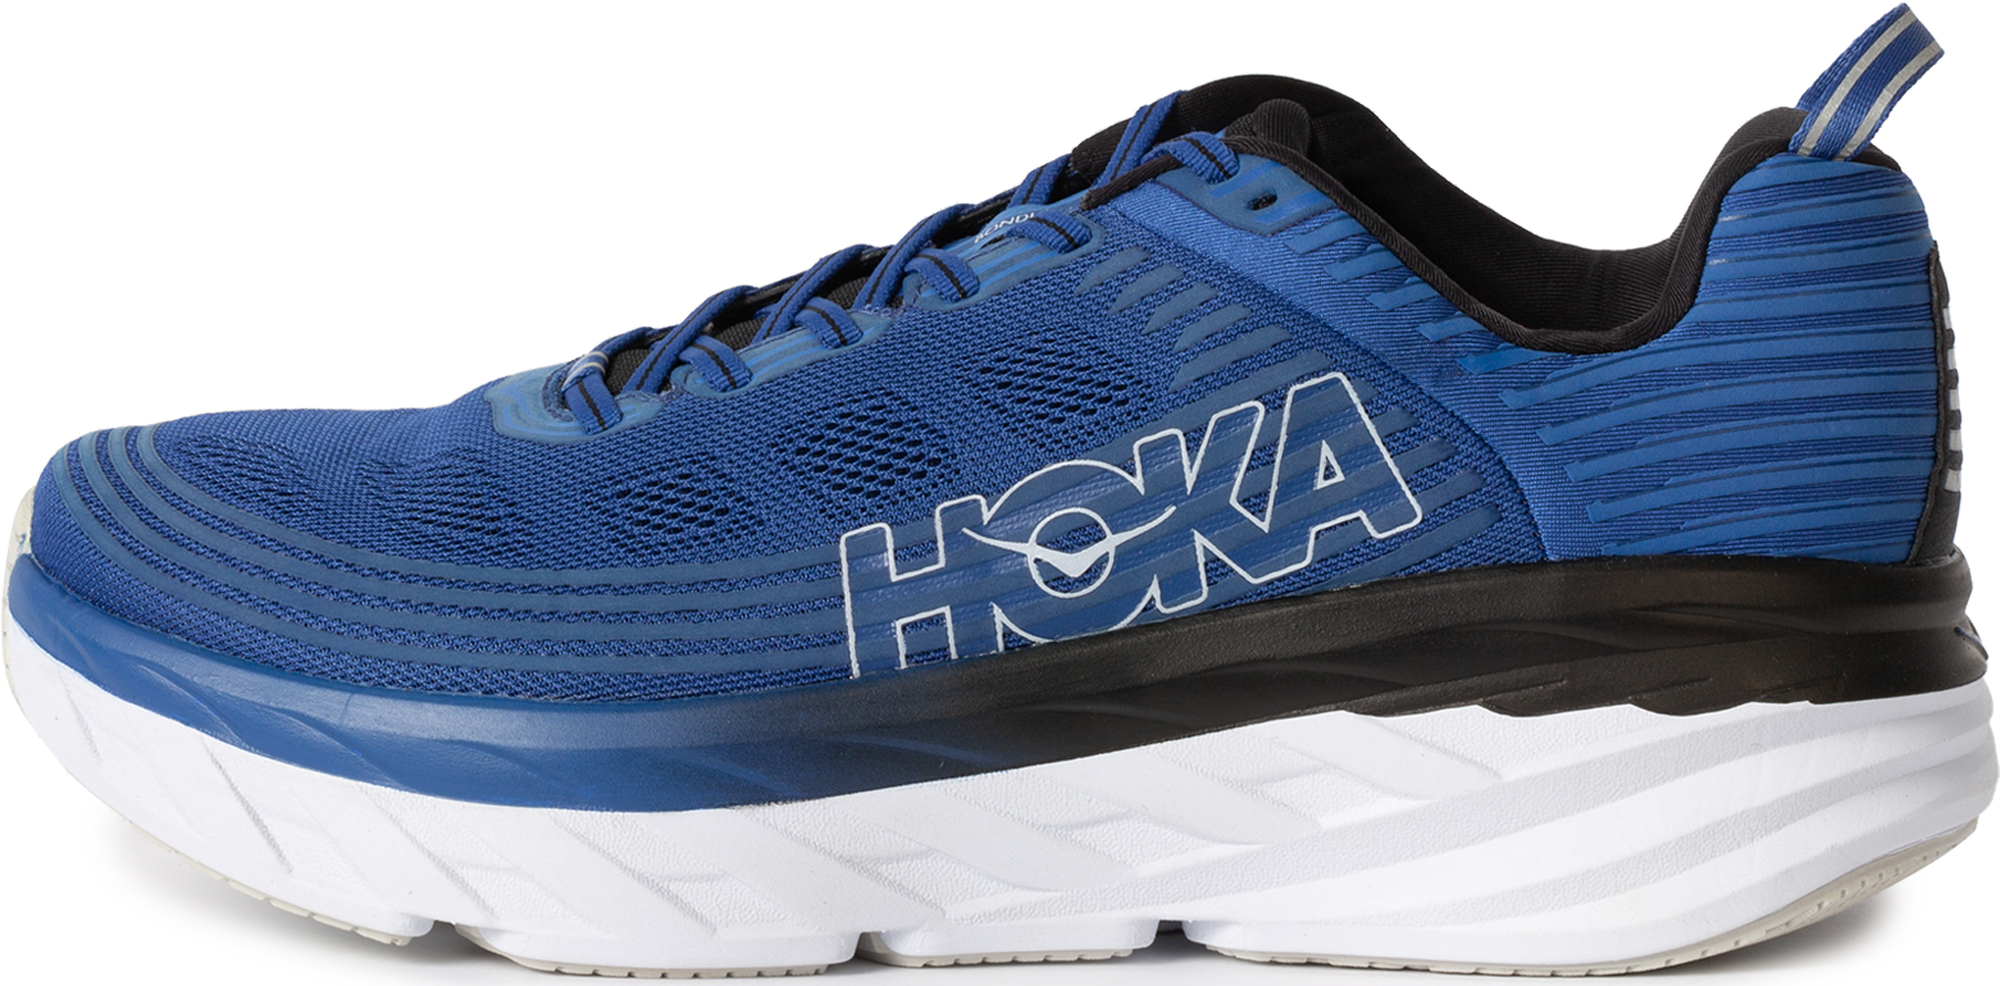 HOKA ONE ONE Кроссовки мужские HOKA ONE ONE Bondi 6, размер 47,5 hoka one one women s w conquest running shoe